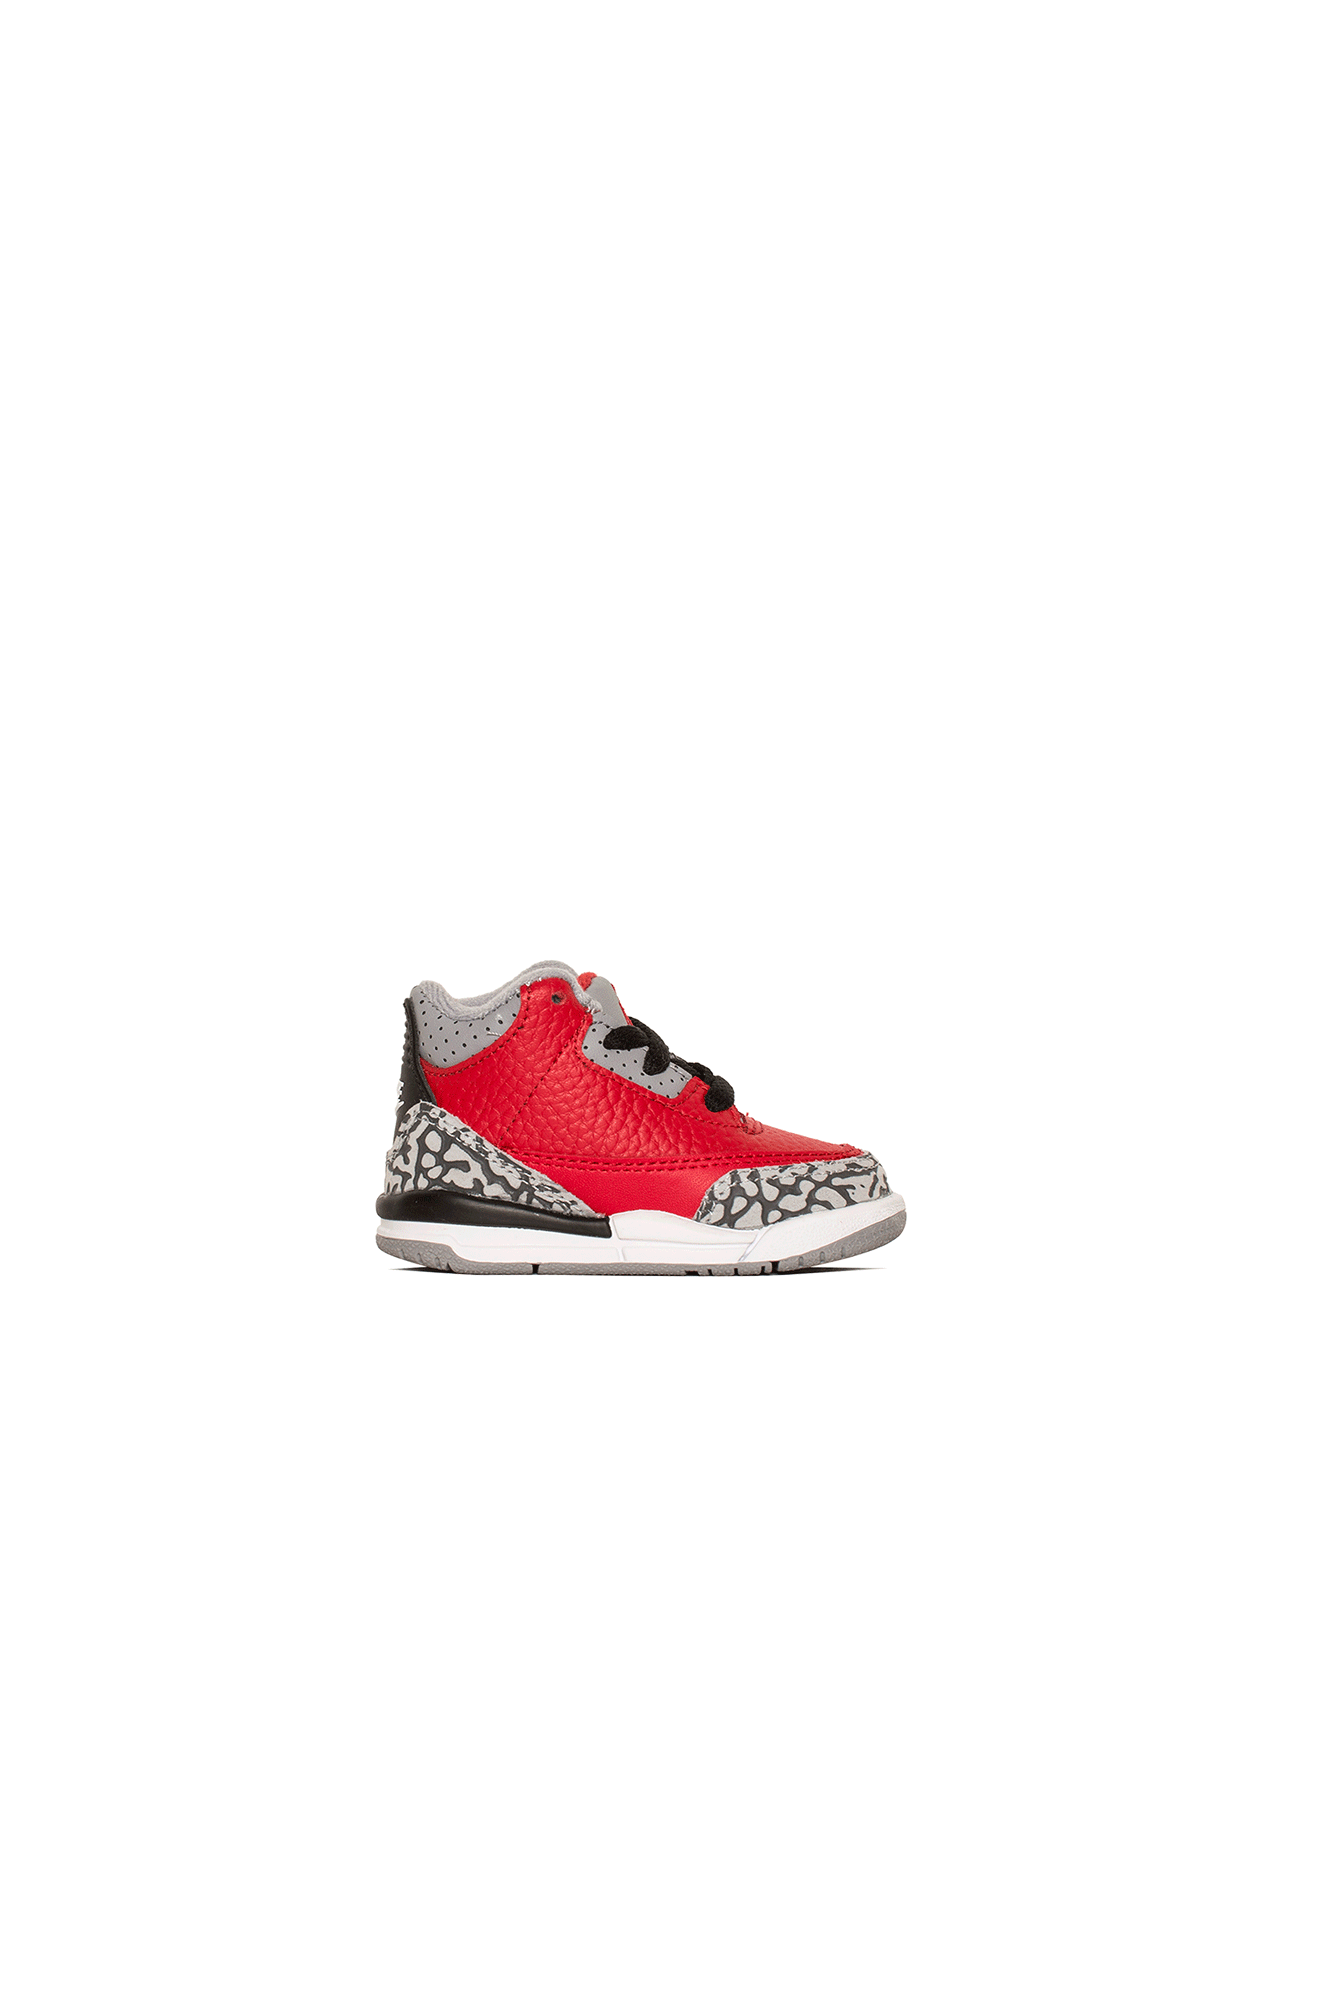 Air Jordan 3 One Block Down